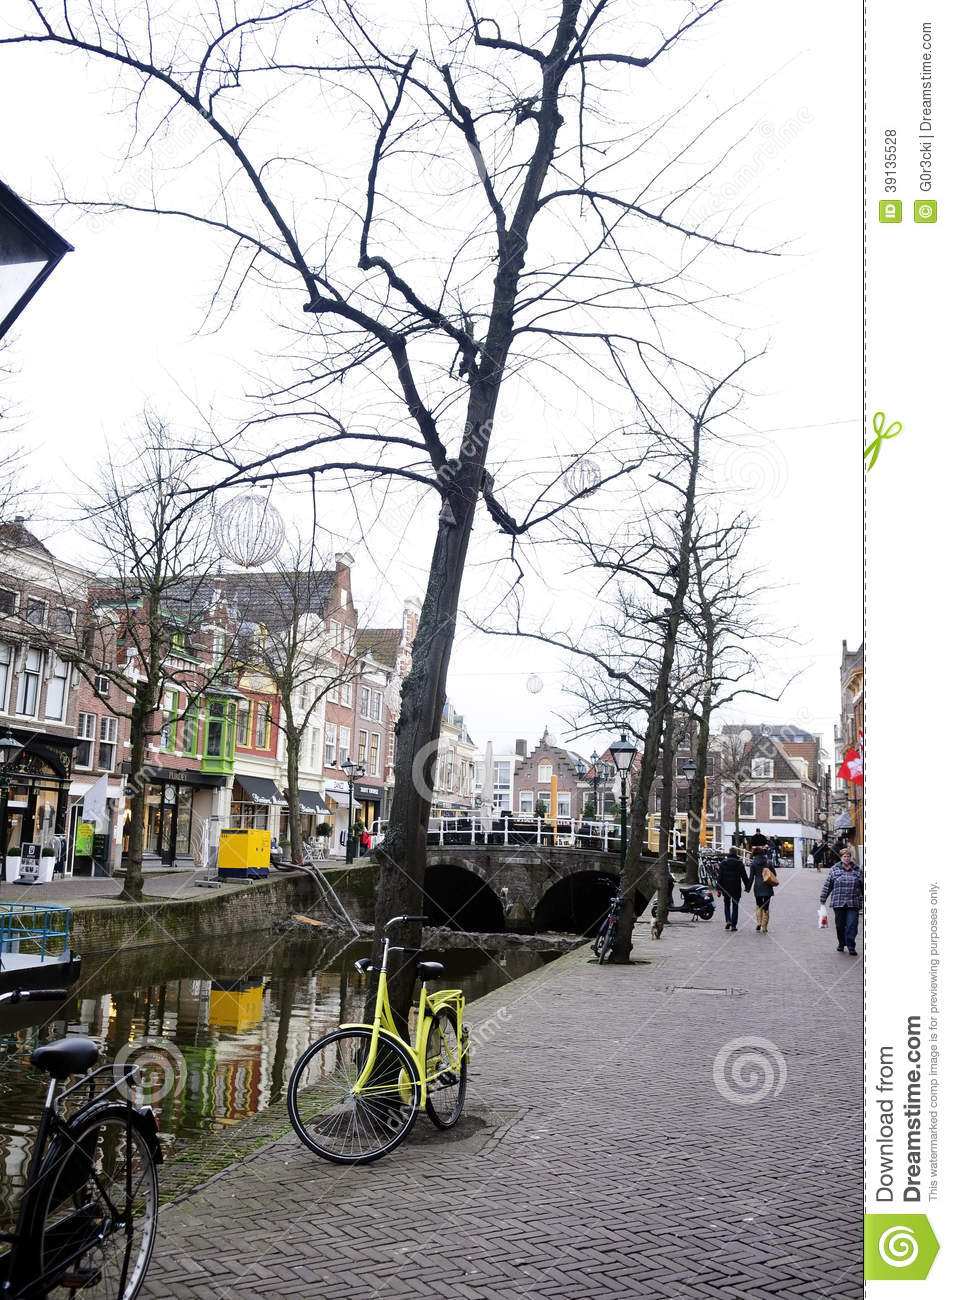 Alkmaar Street, Netherlands - Winter Day - Dutch City